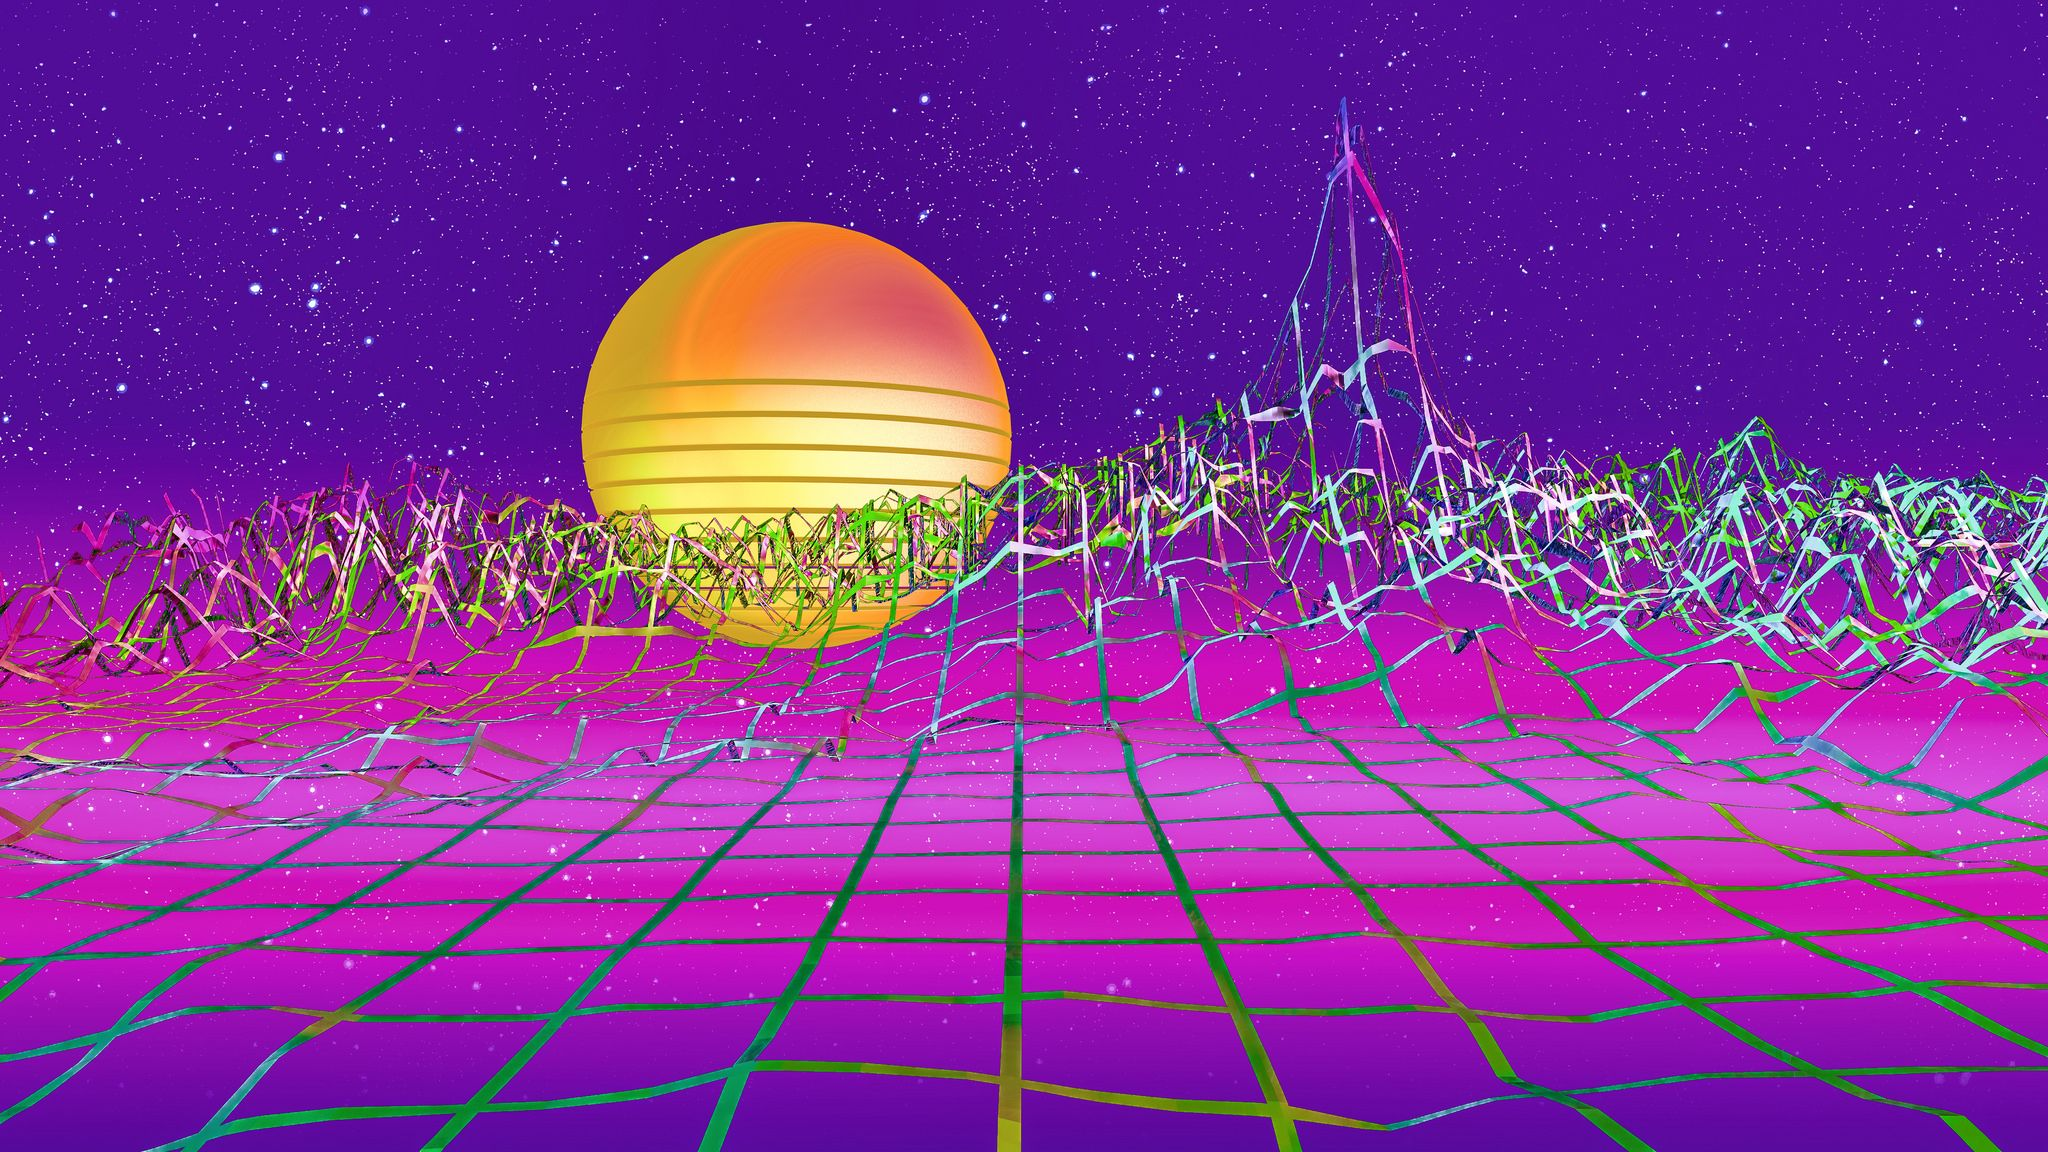 Vaporwavewp3print art pinterest vaporwave wallpaper - Space 80s wallpaper ...